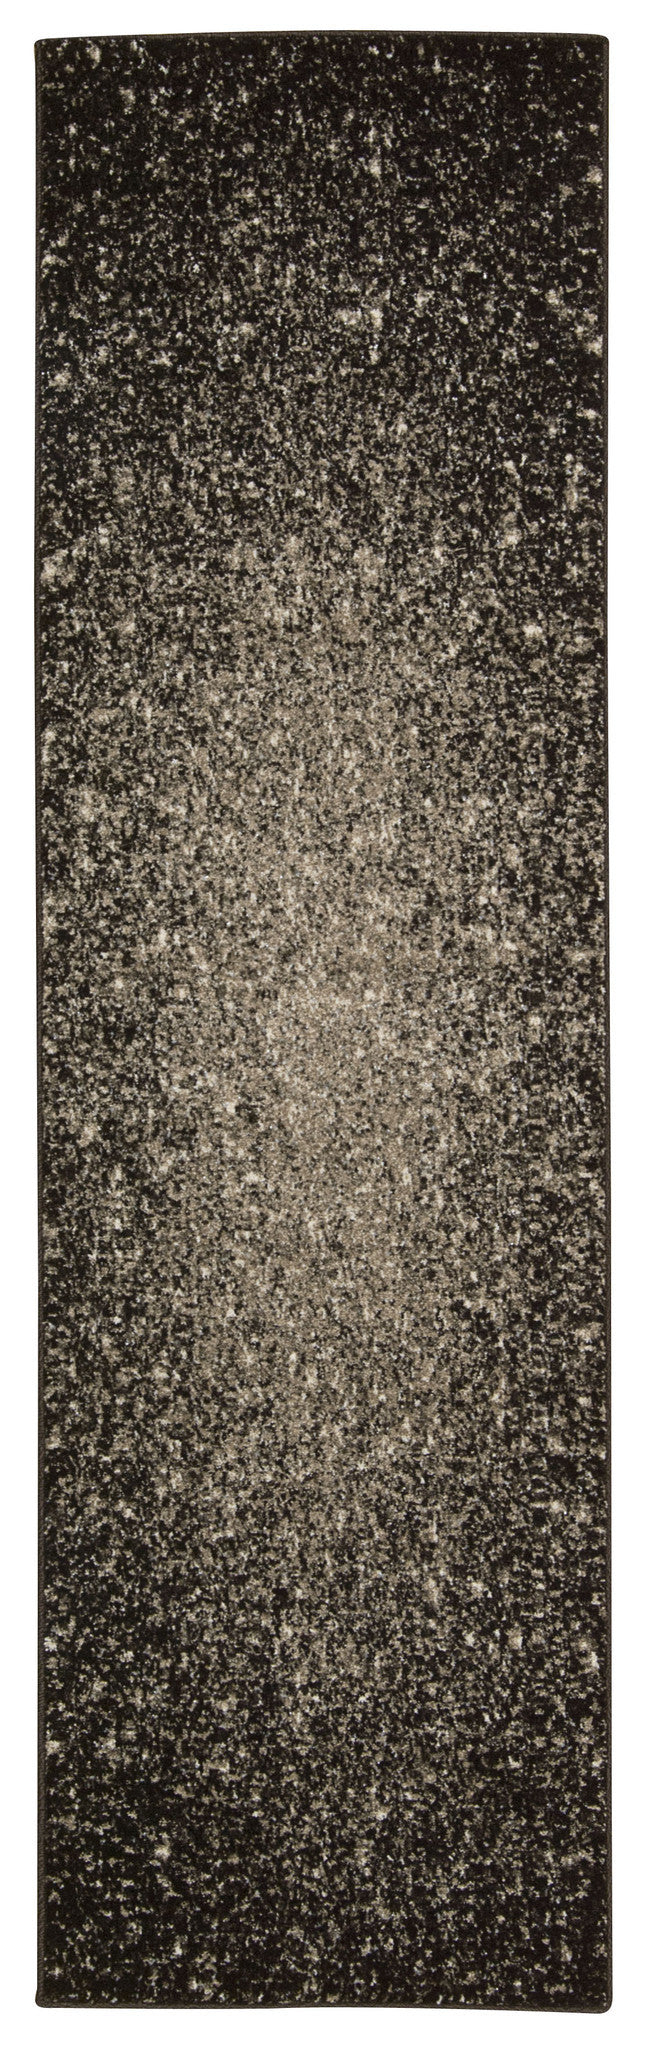 Michael Amini Glistening Nights Grey Area Rug By Nourison MA504 GRY